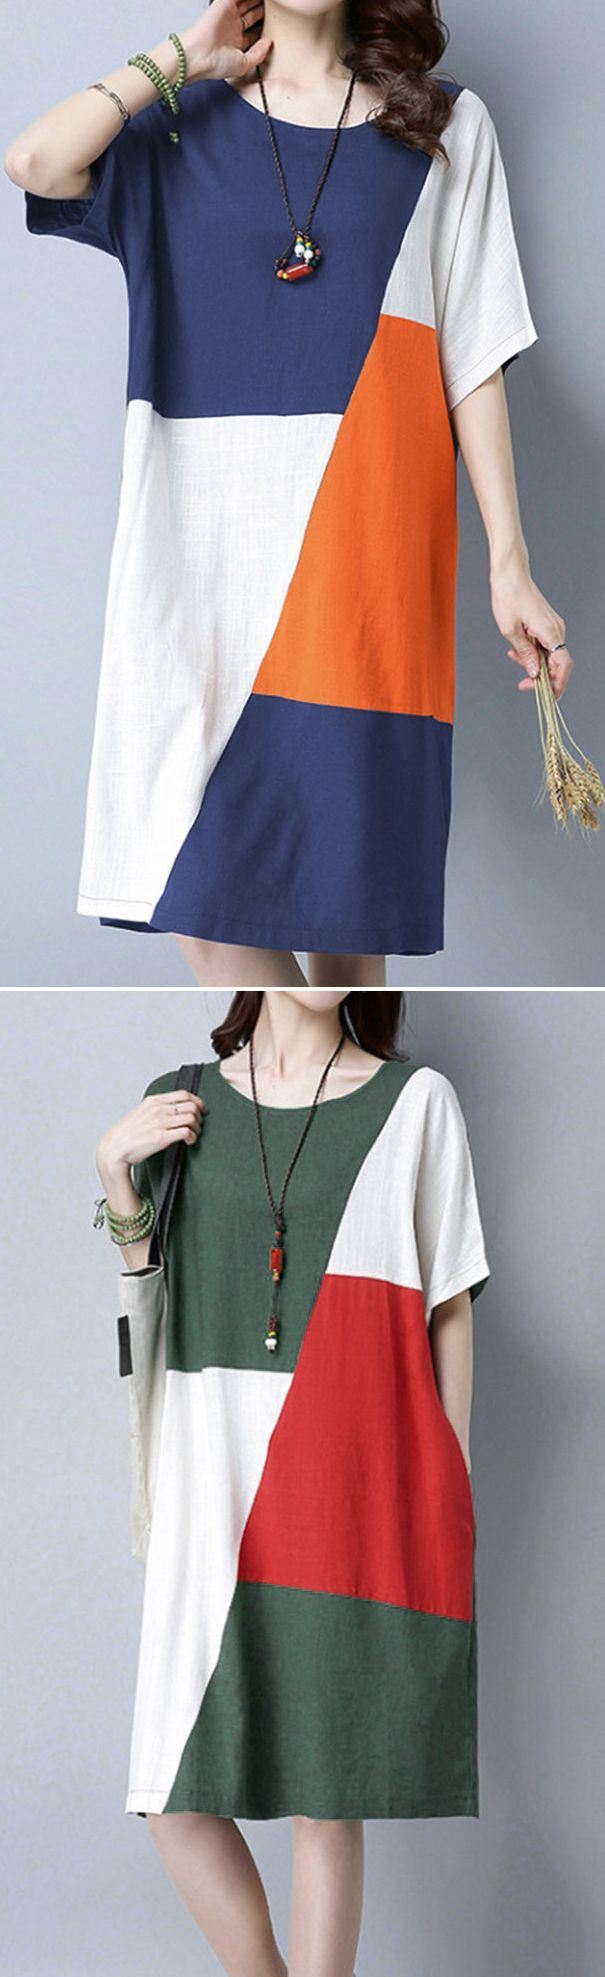 US$ 19.38 Casual Patchwork Loose Short Sleeve O-neck Dress For Women